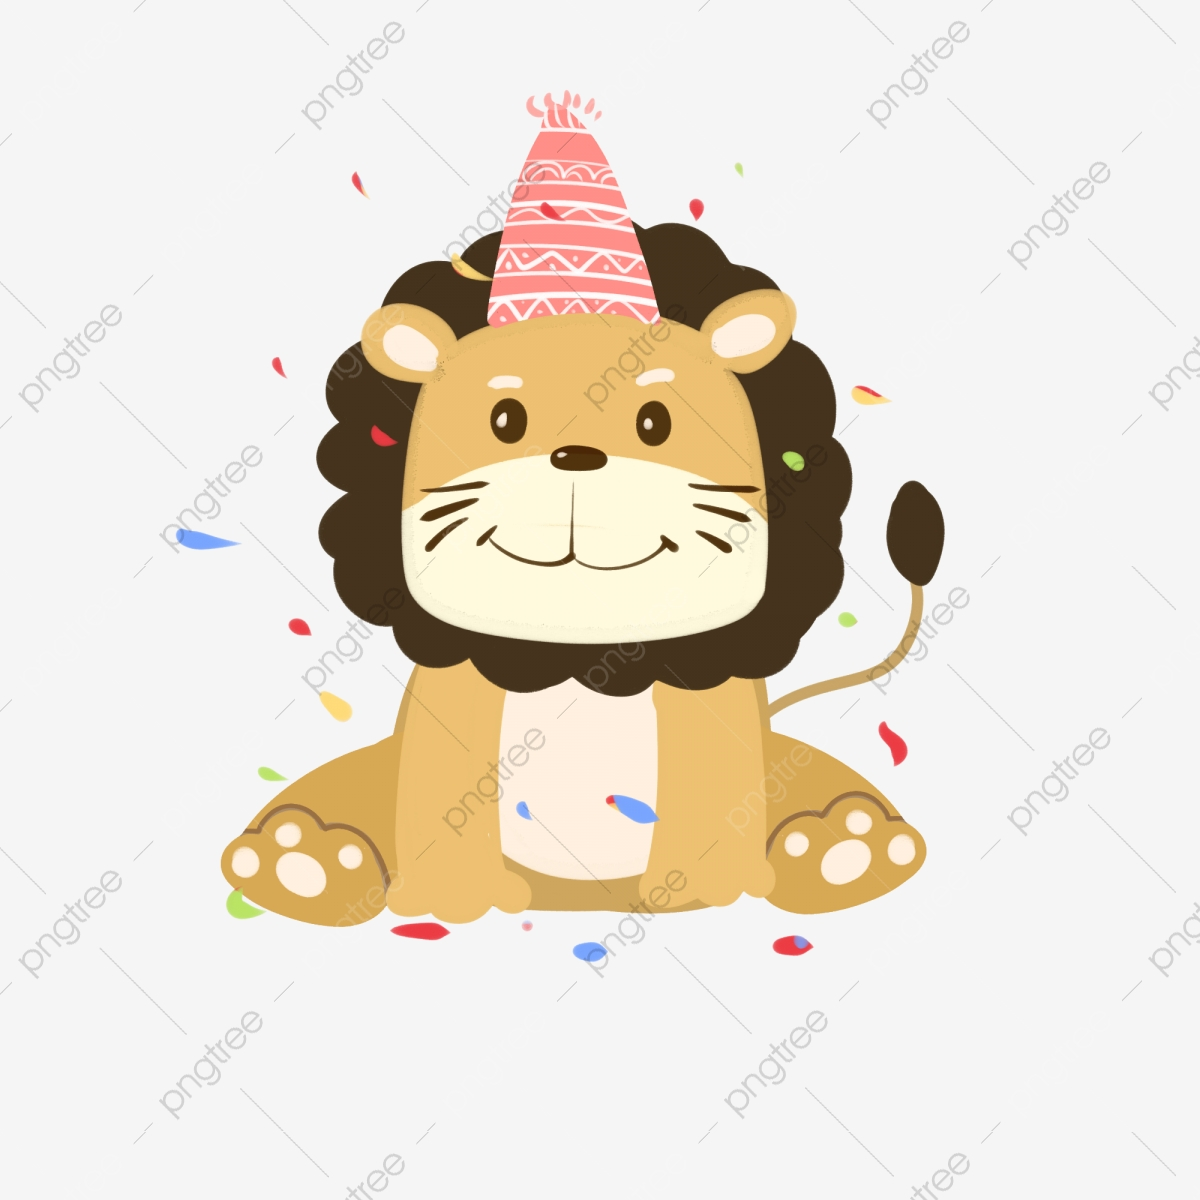 Happy Birthday Cute Animal Poster Animation Clipart Birthday Happy Birthday Png Transparent Clipart Image And Psd File For Free Download